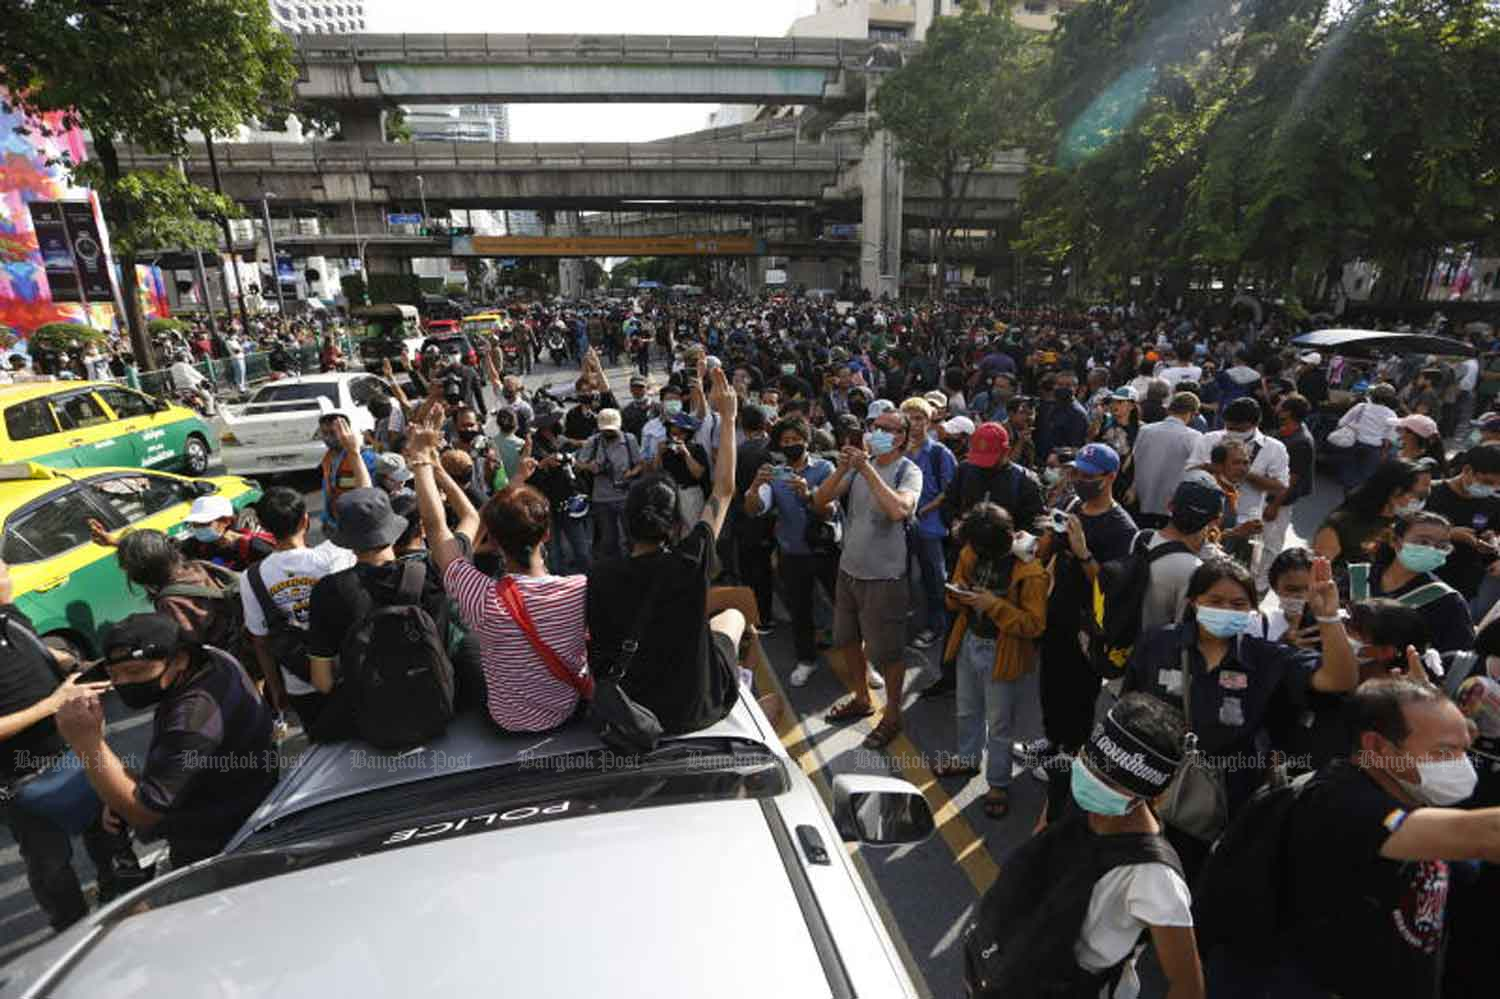 Demonstrators near Ratchaprasong intersection in Bangkok on Thursday evening. (Photo by Arnun Chonmahatrakool)